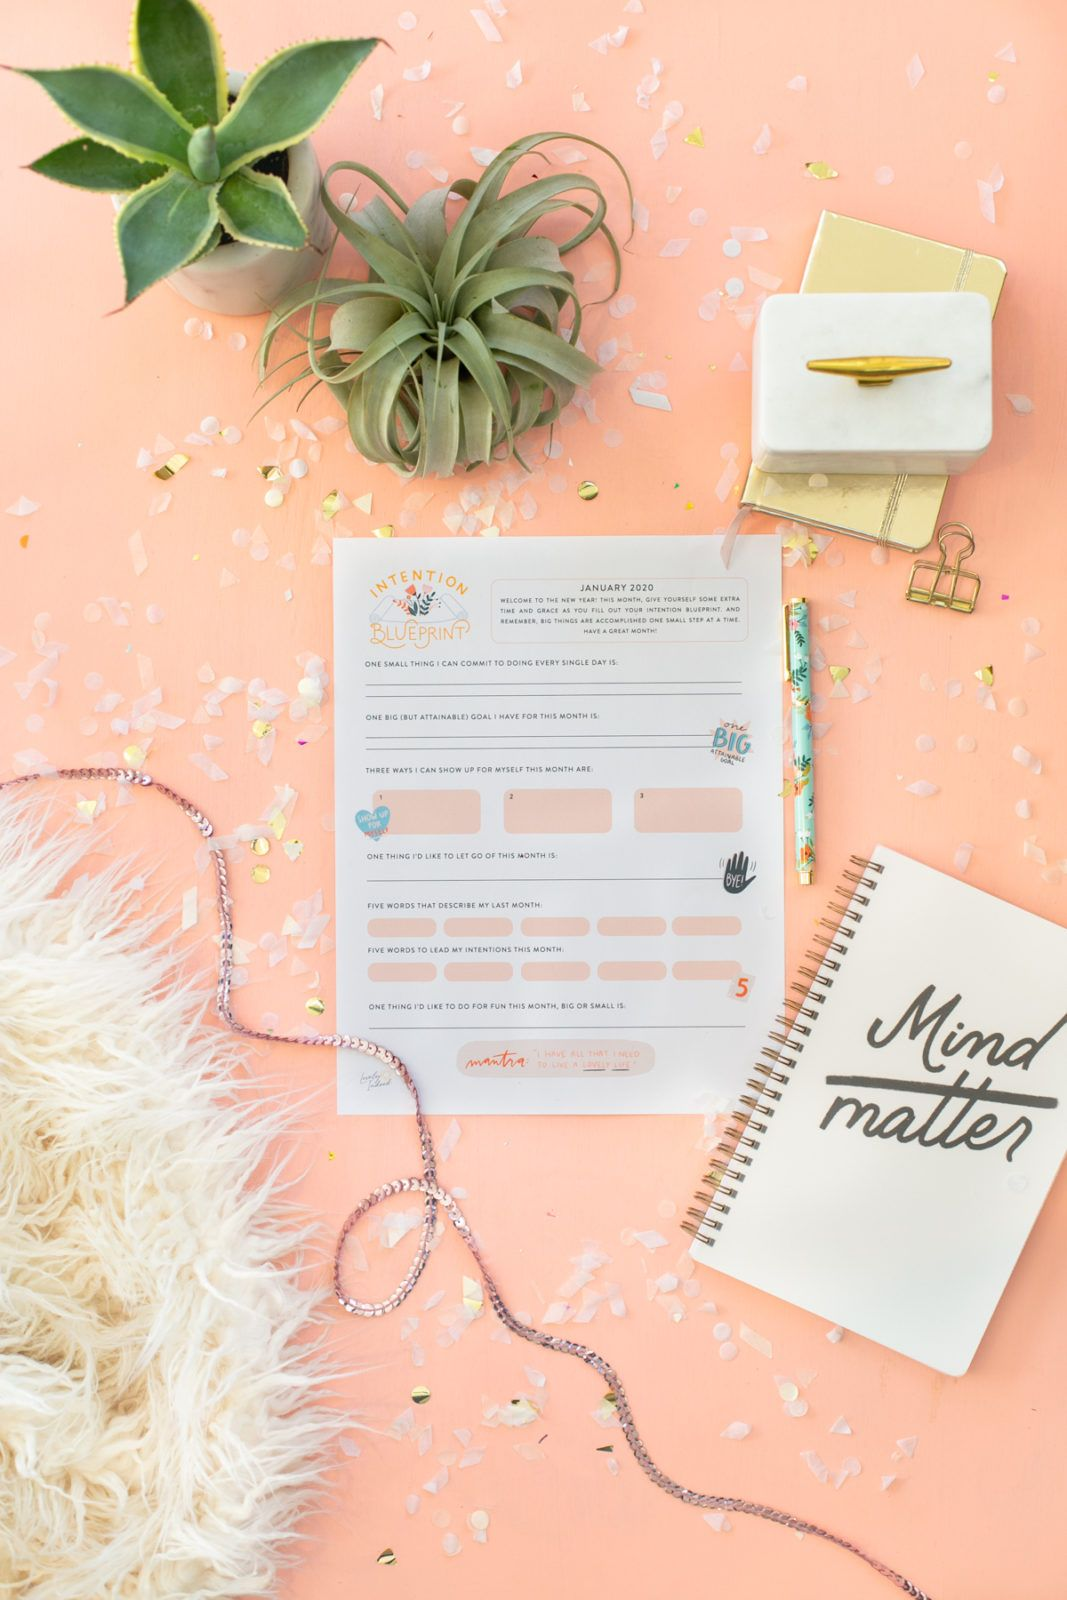 Set Goals with this Free January Intention Blueprint